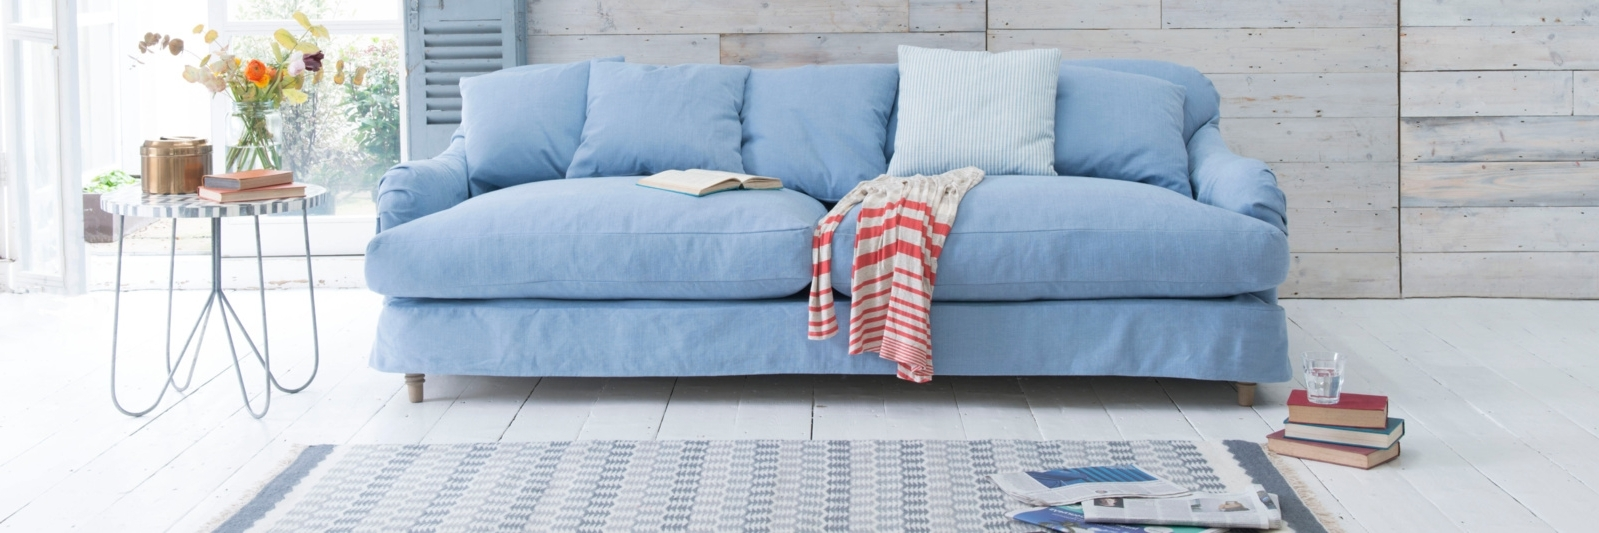 Well Known Washable Slipcovered Sofas Machine Washable Sectional White Intended For Washable Sofas (View 4 of 15)